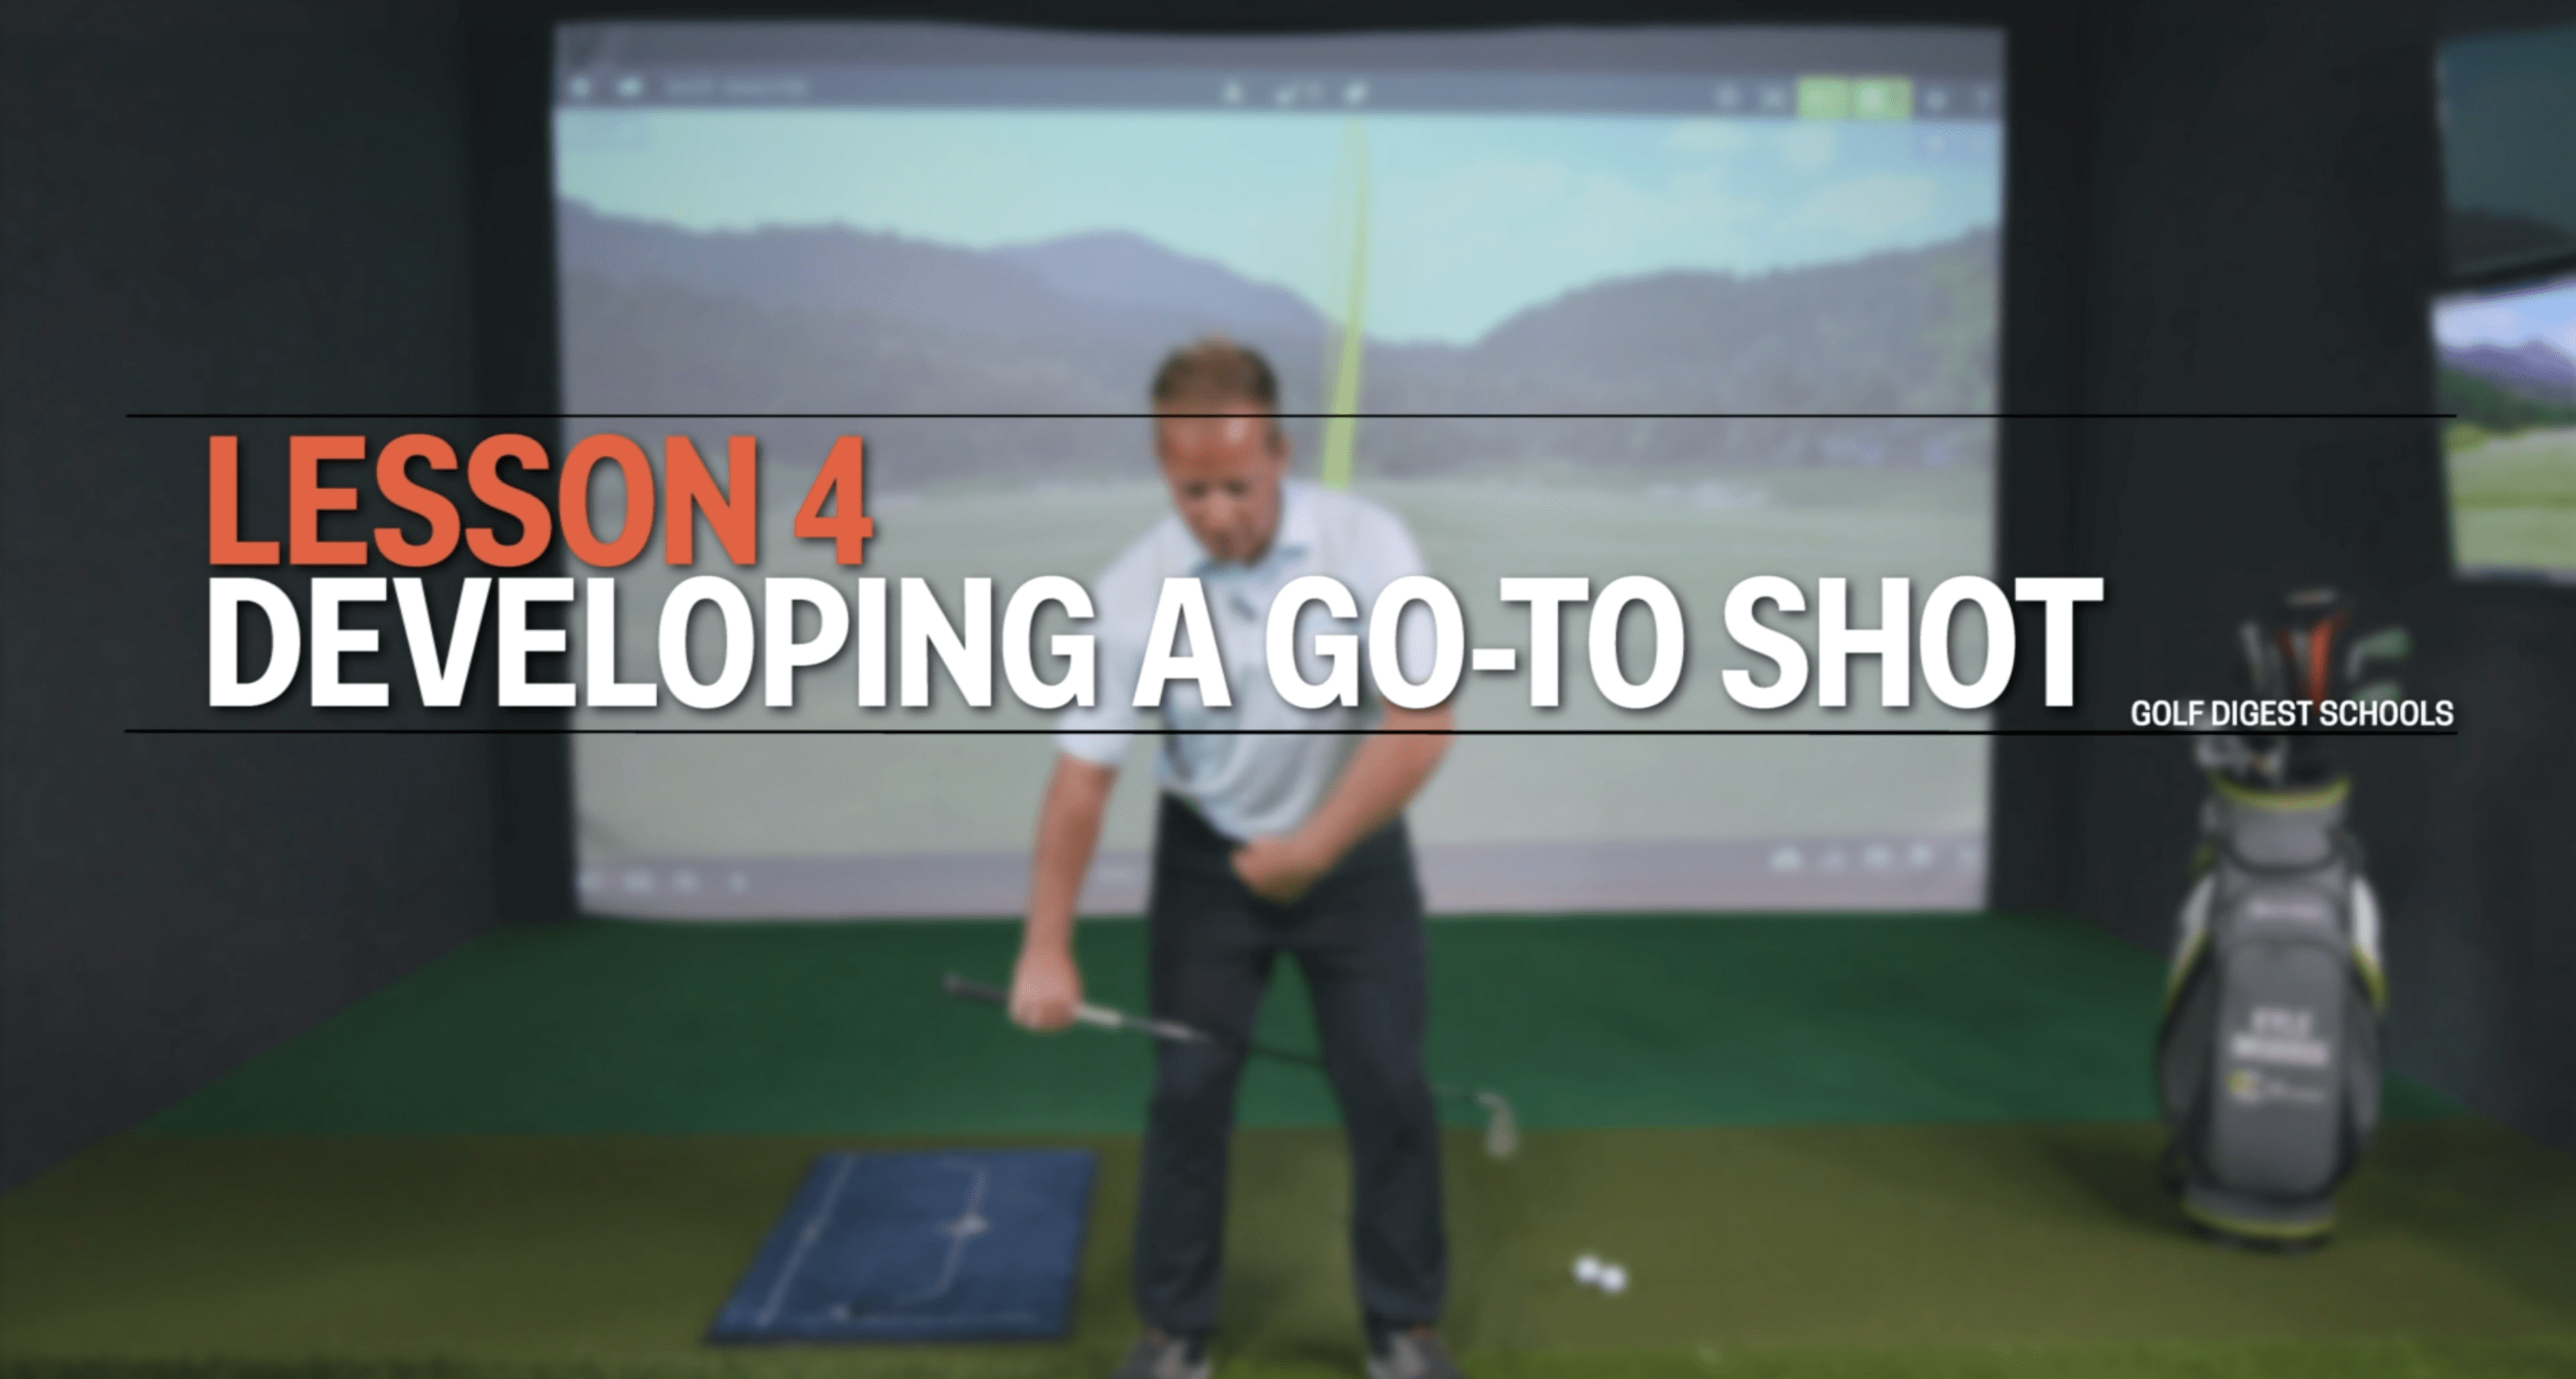 Lesson 4: Developing a Go-to Shot